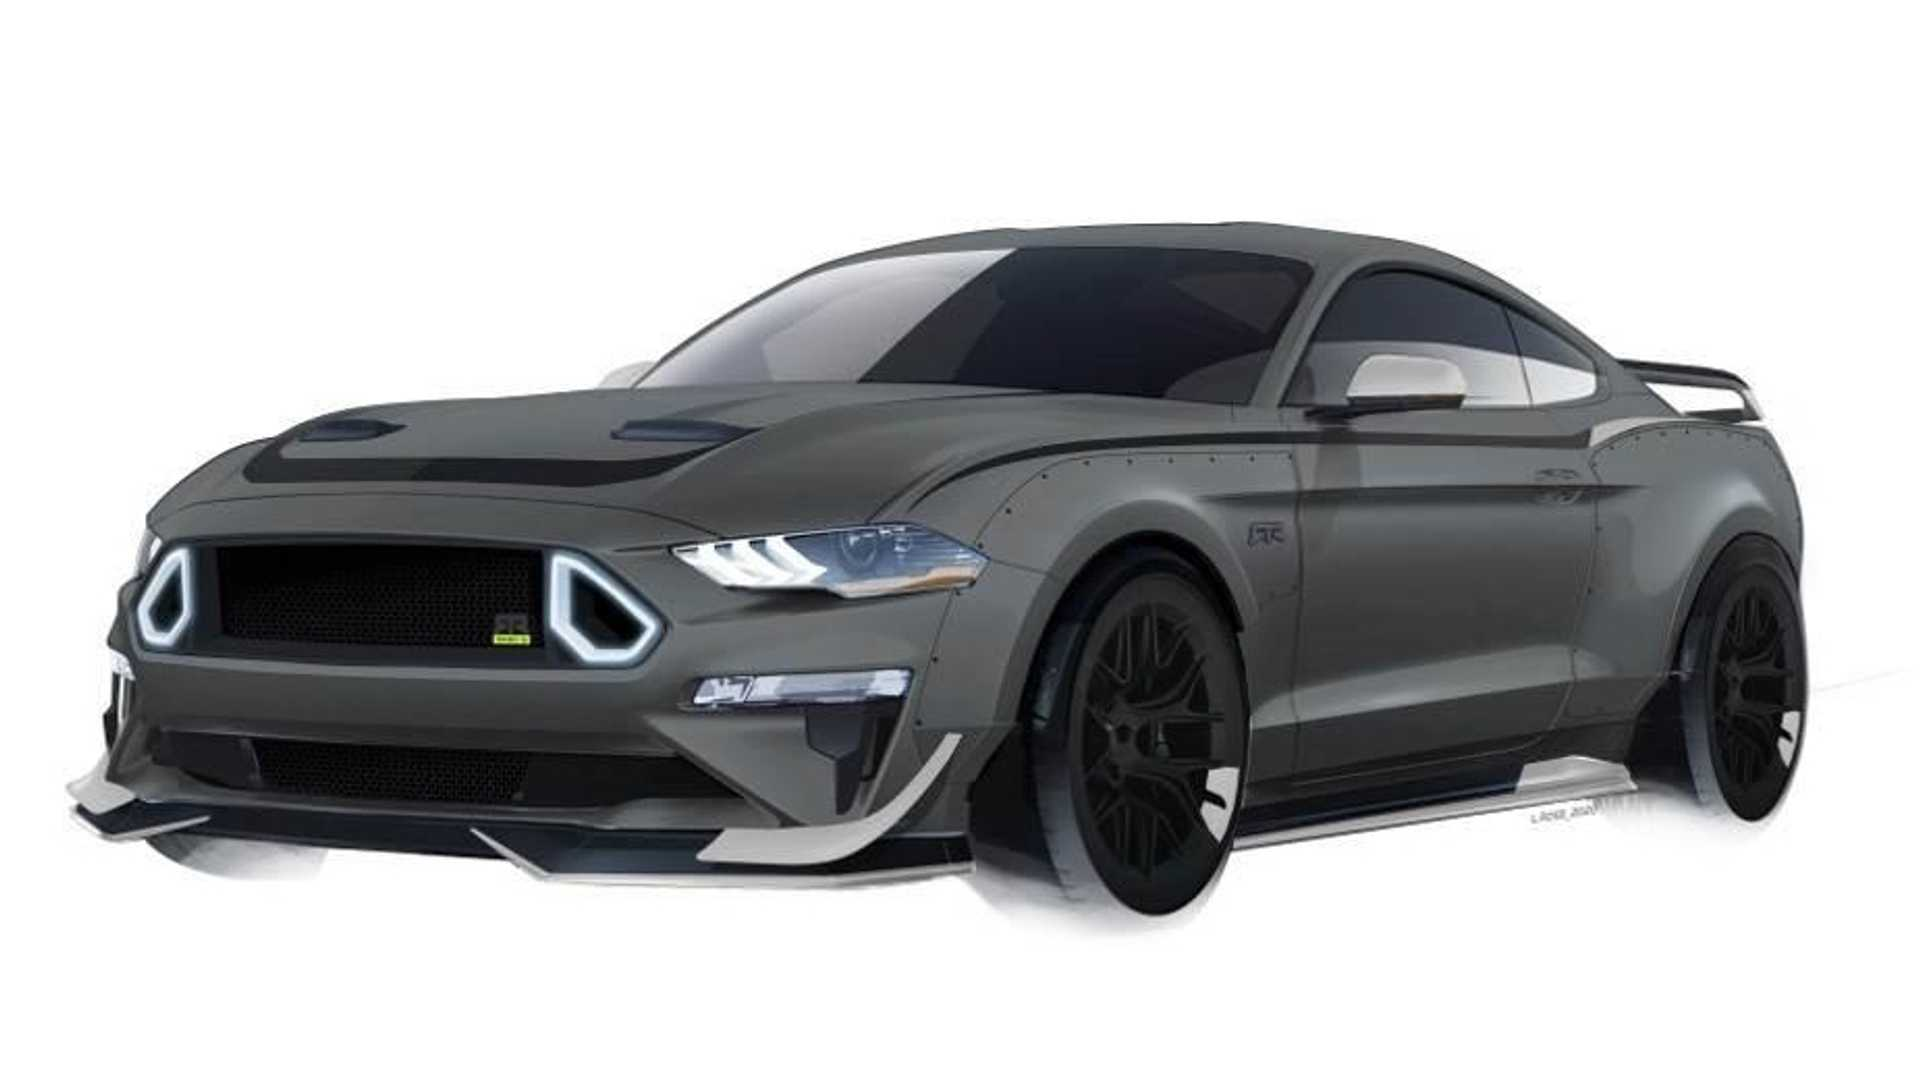 rtr-10th-anniversary-mustang-spec-5-4